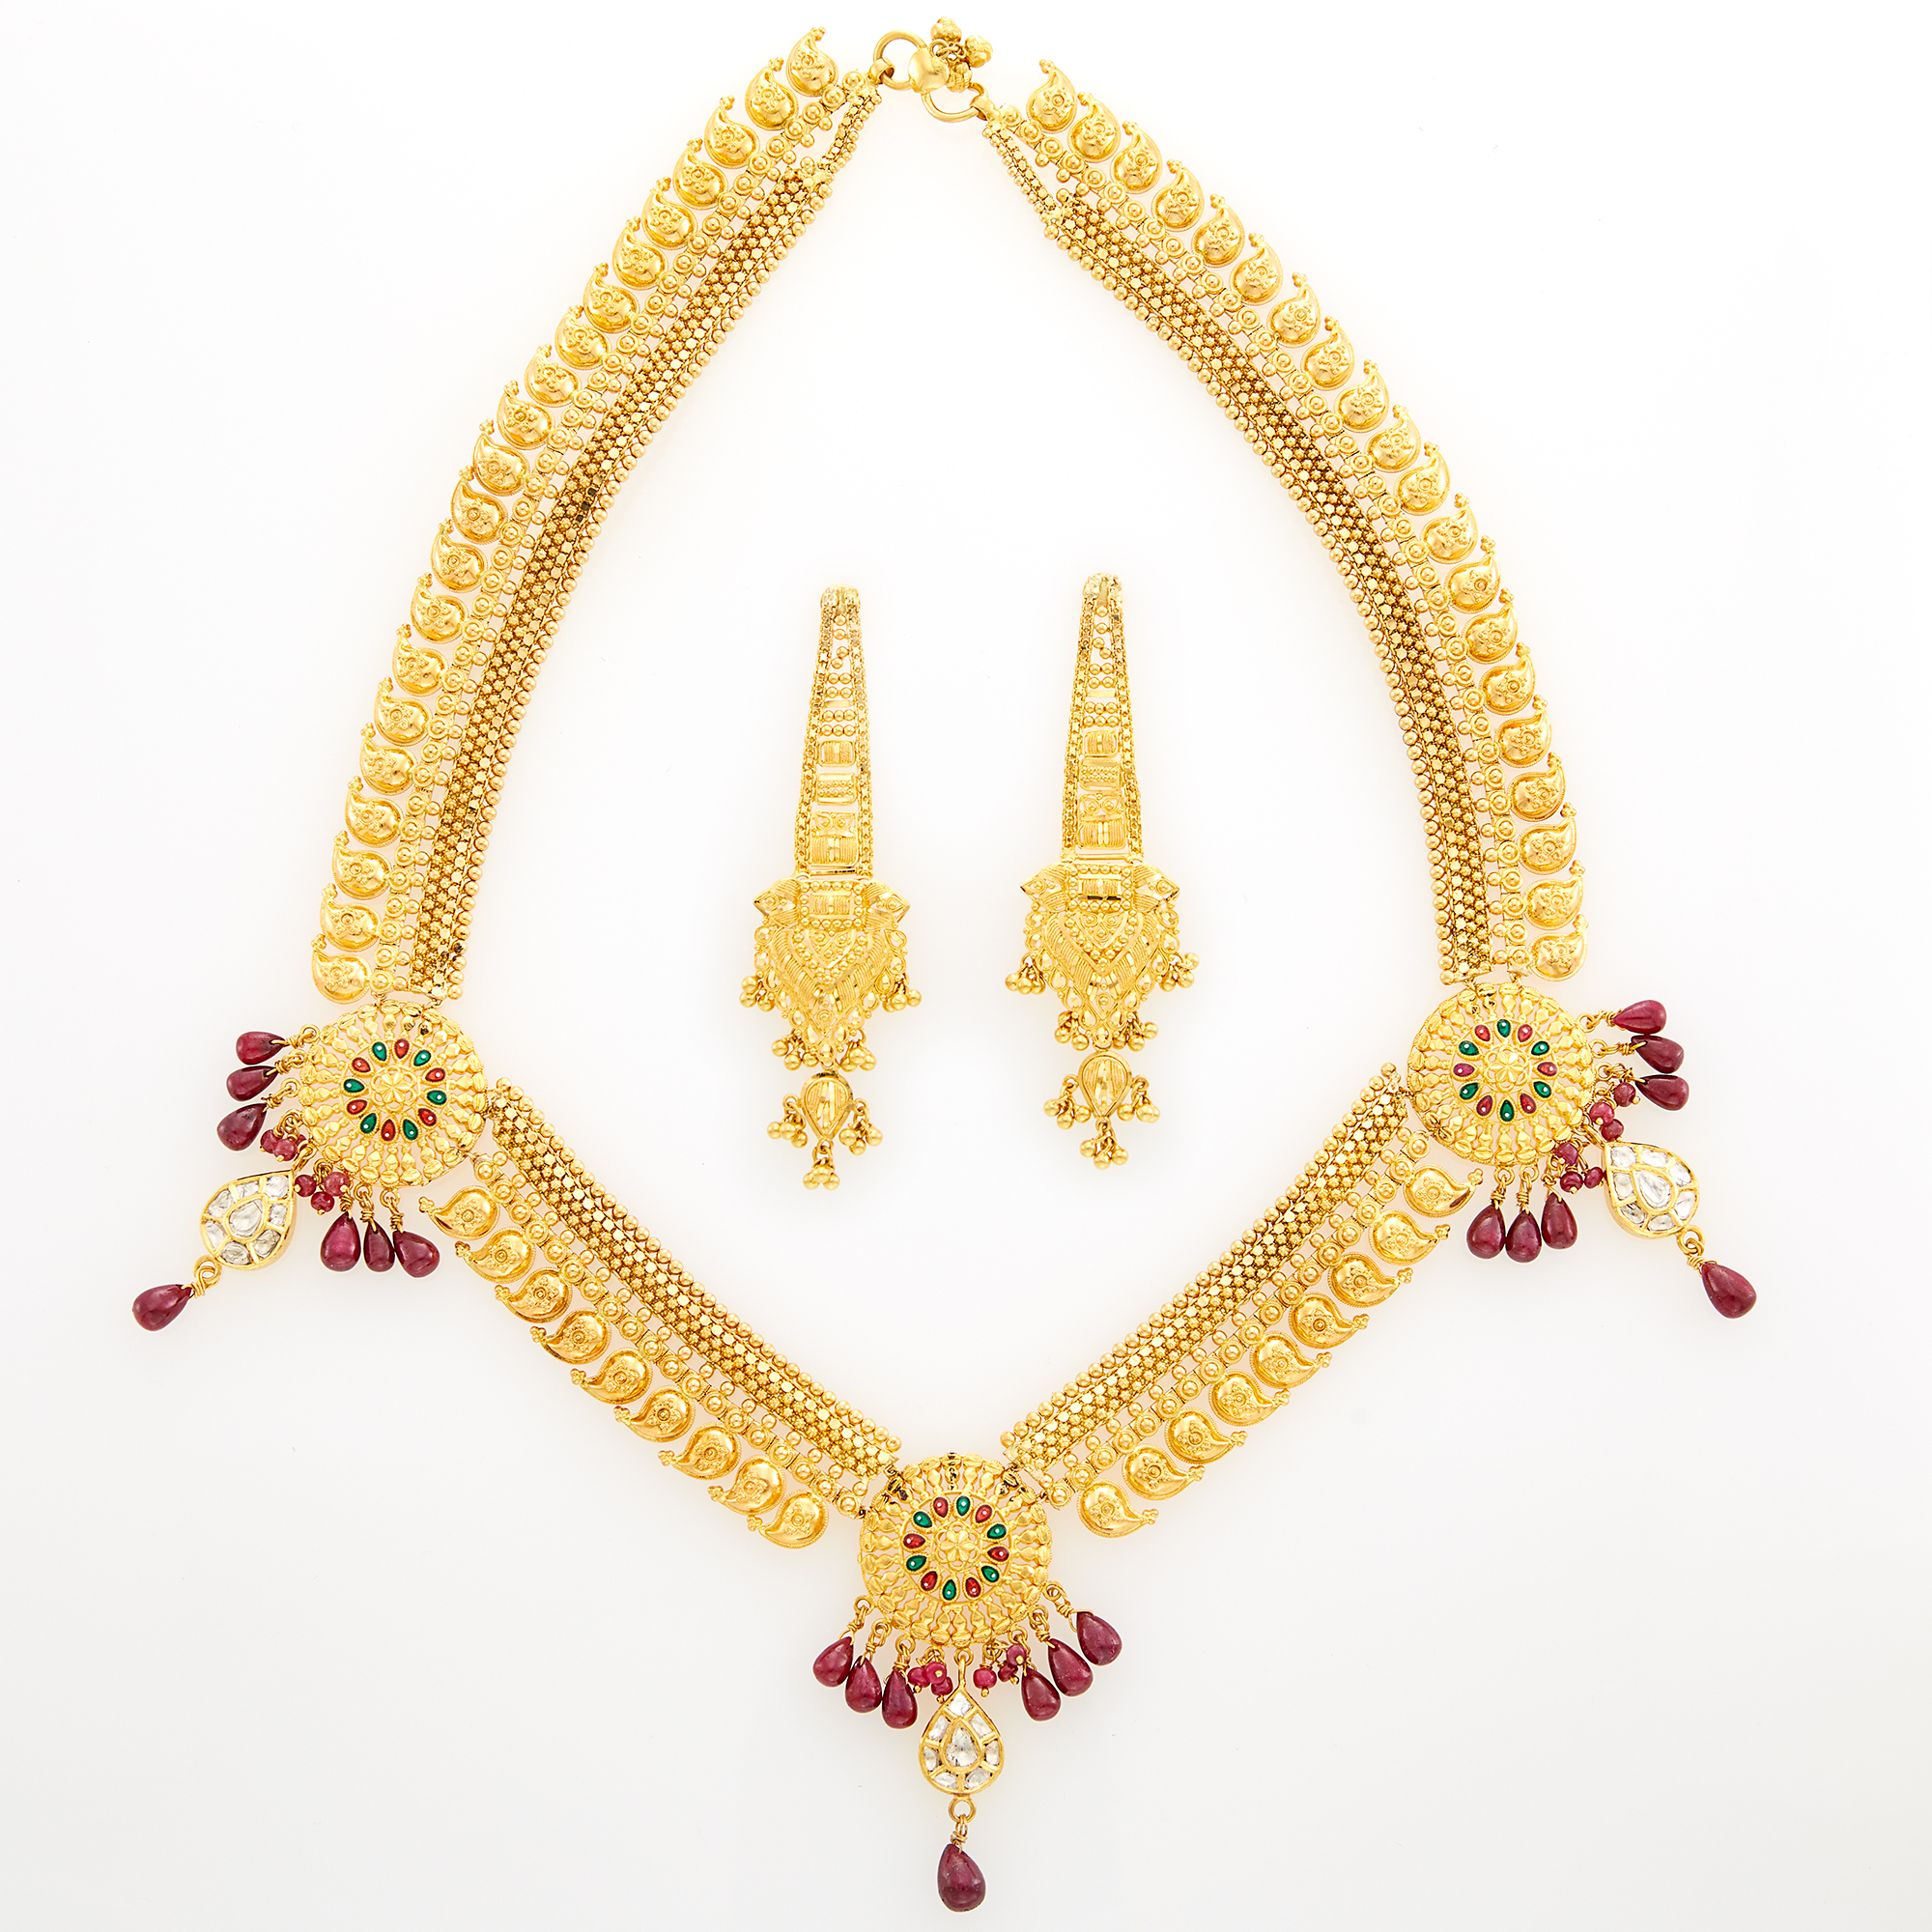 Lot image - Indian High Karat Gold, Foil-Backed Diamond and Ruby Bead Necklace and Pair of Gold Pendant-Earrings